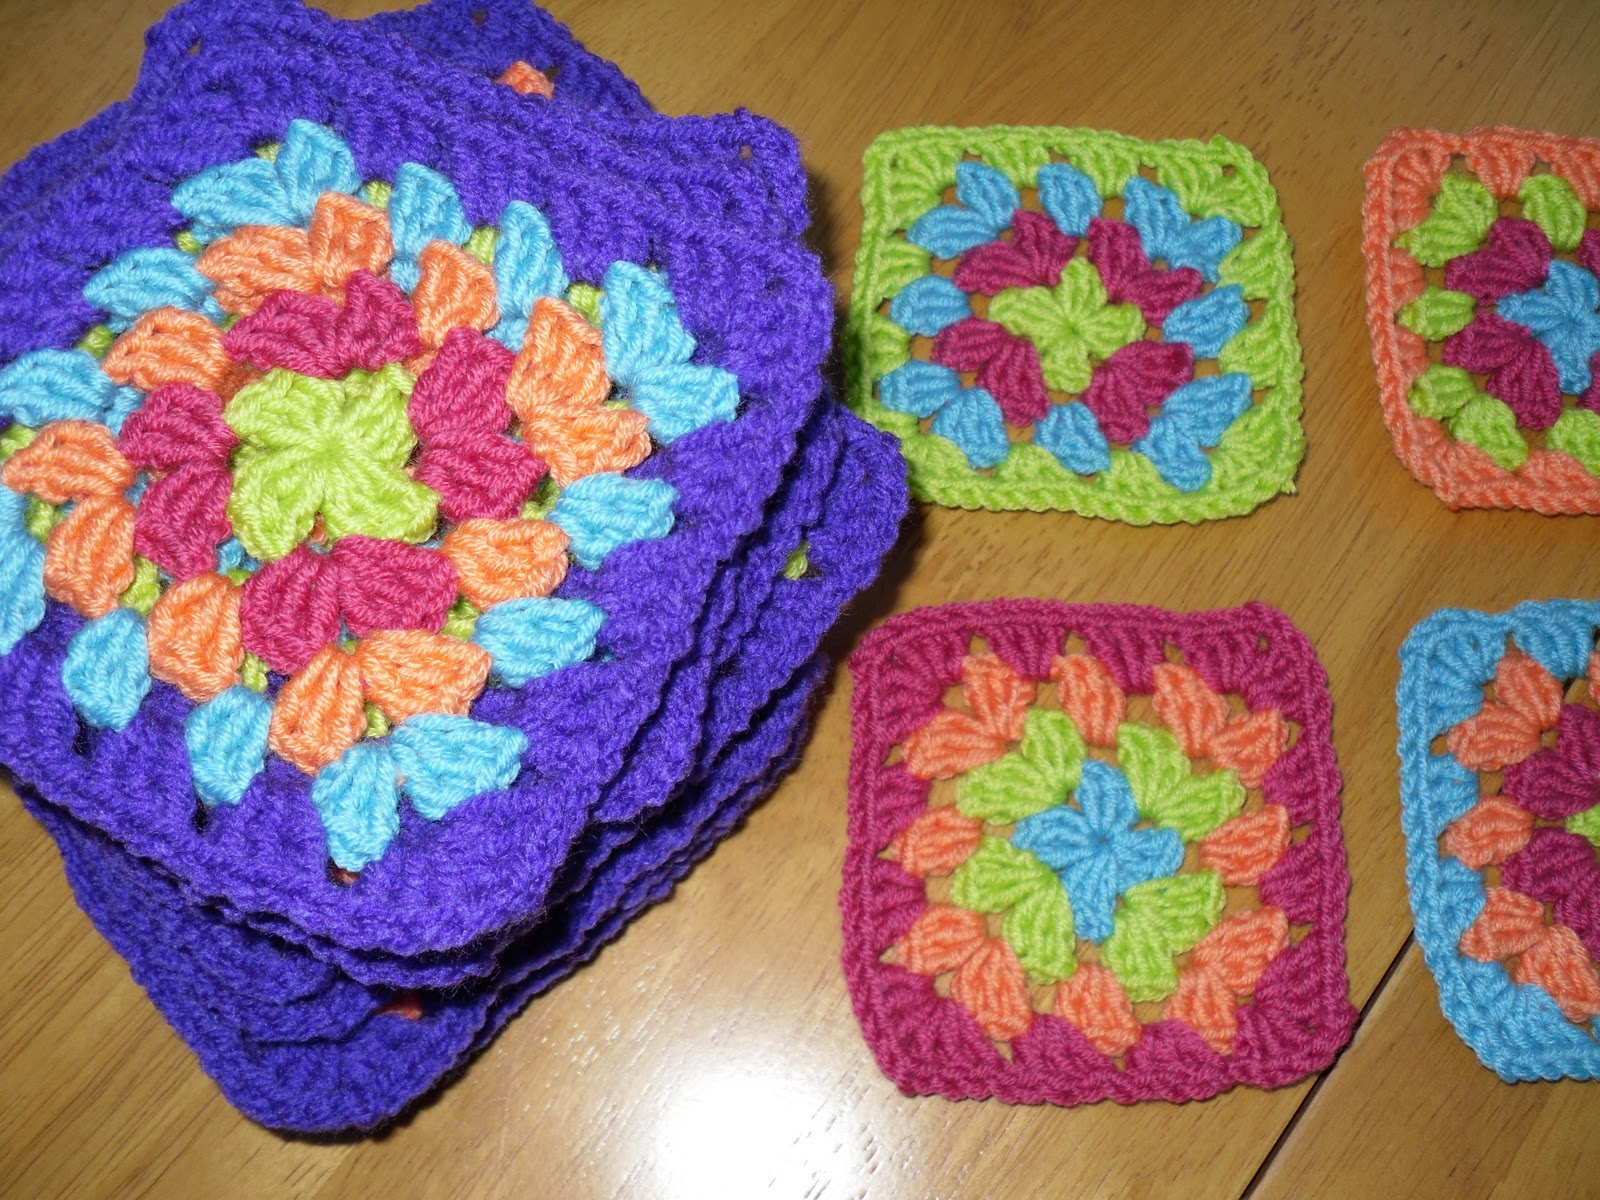 Crochet Granny Stitch : The Craft Attic: More Crochet Granny Squares